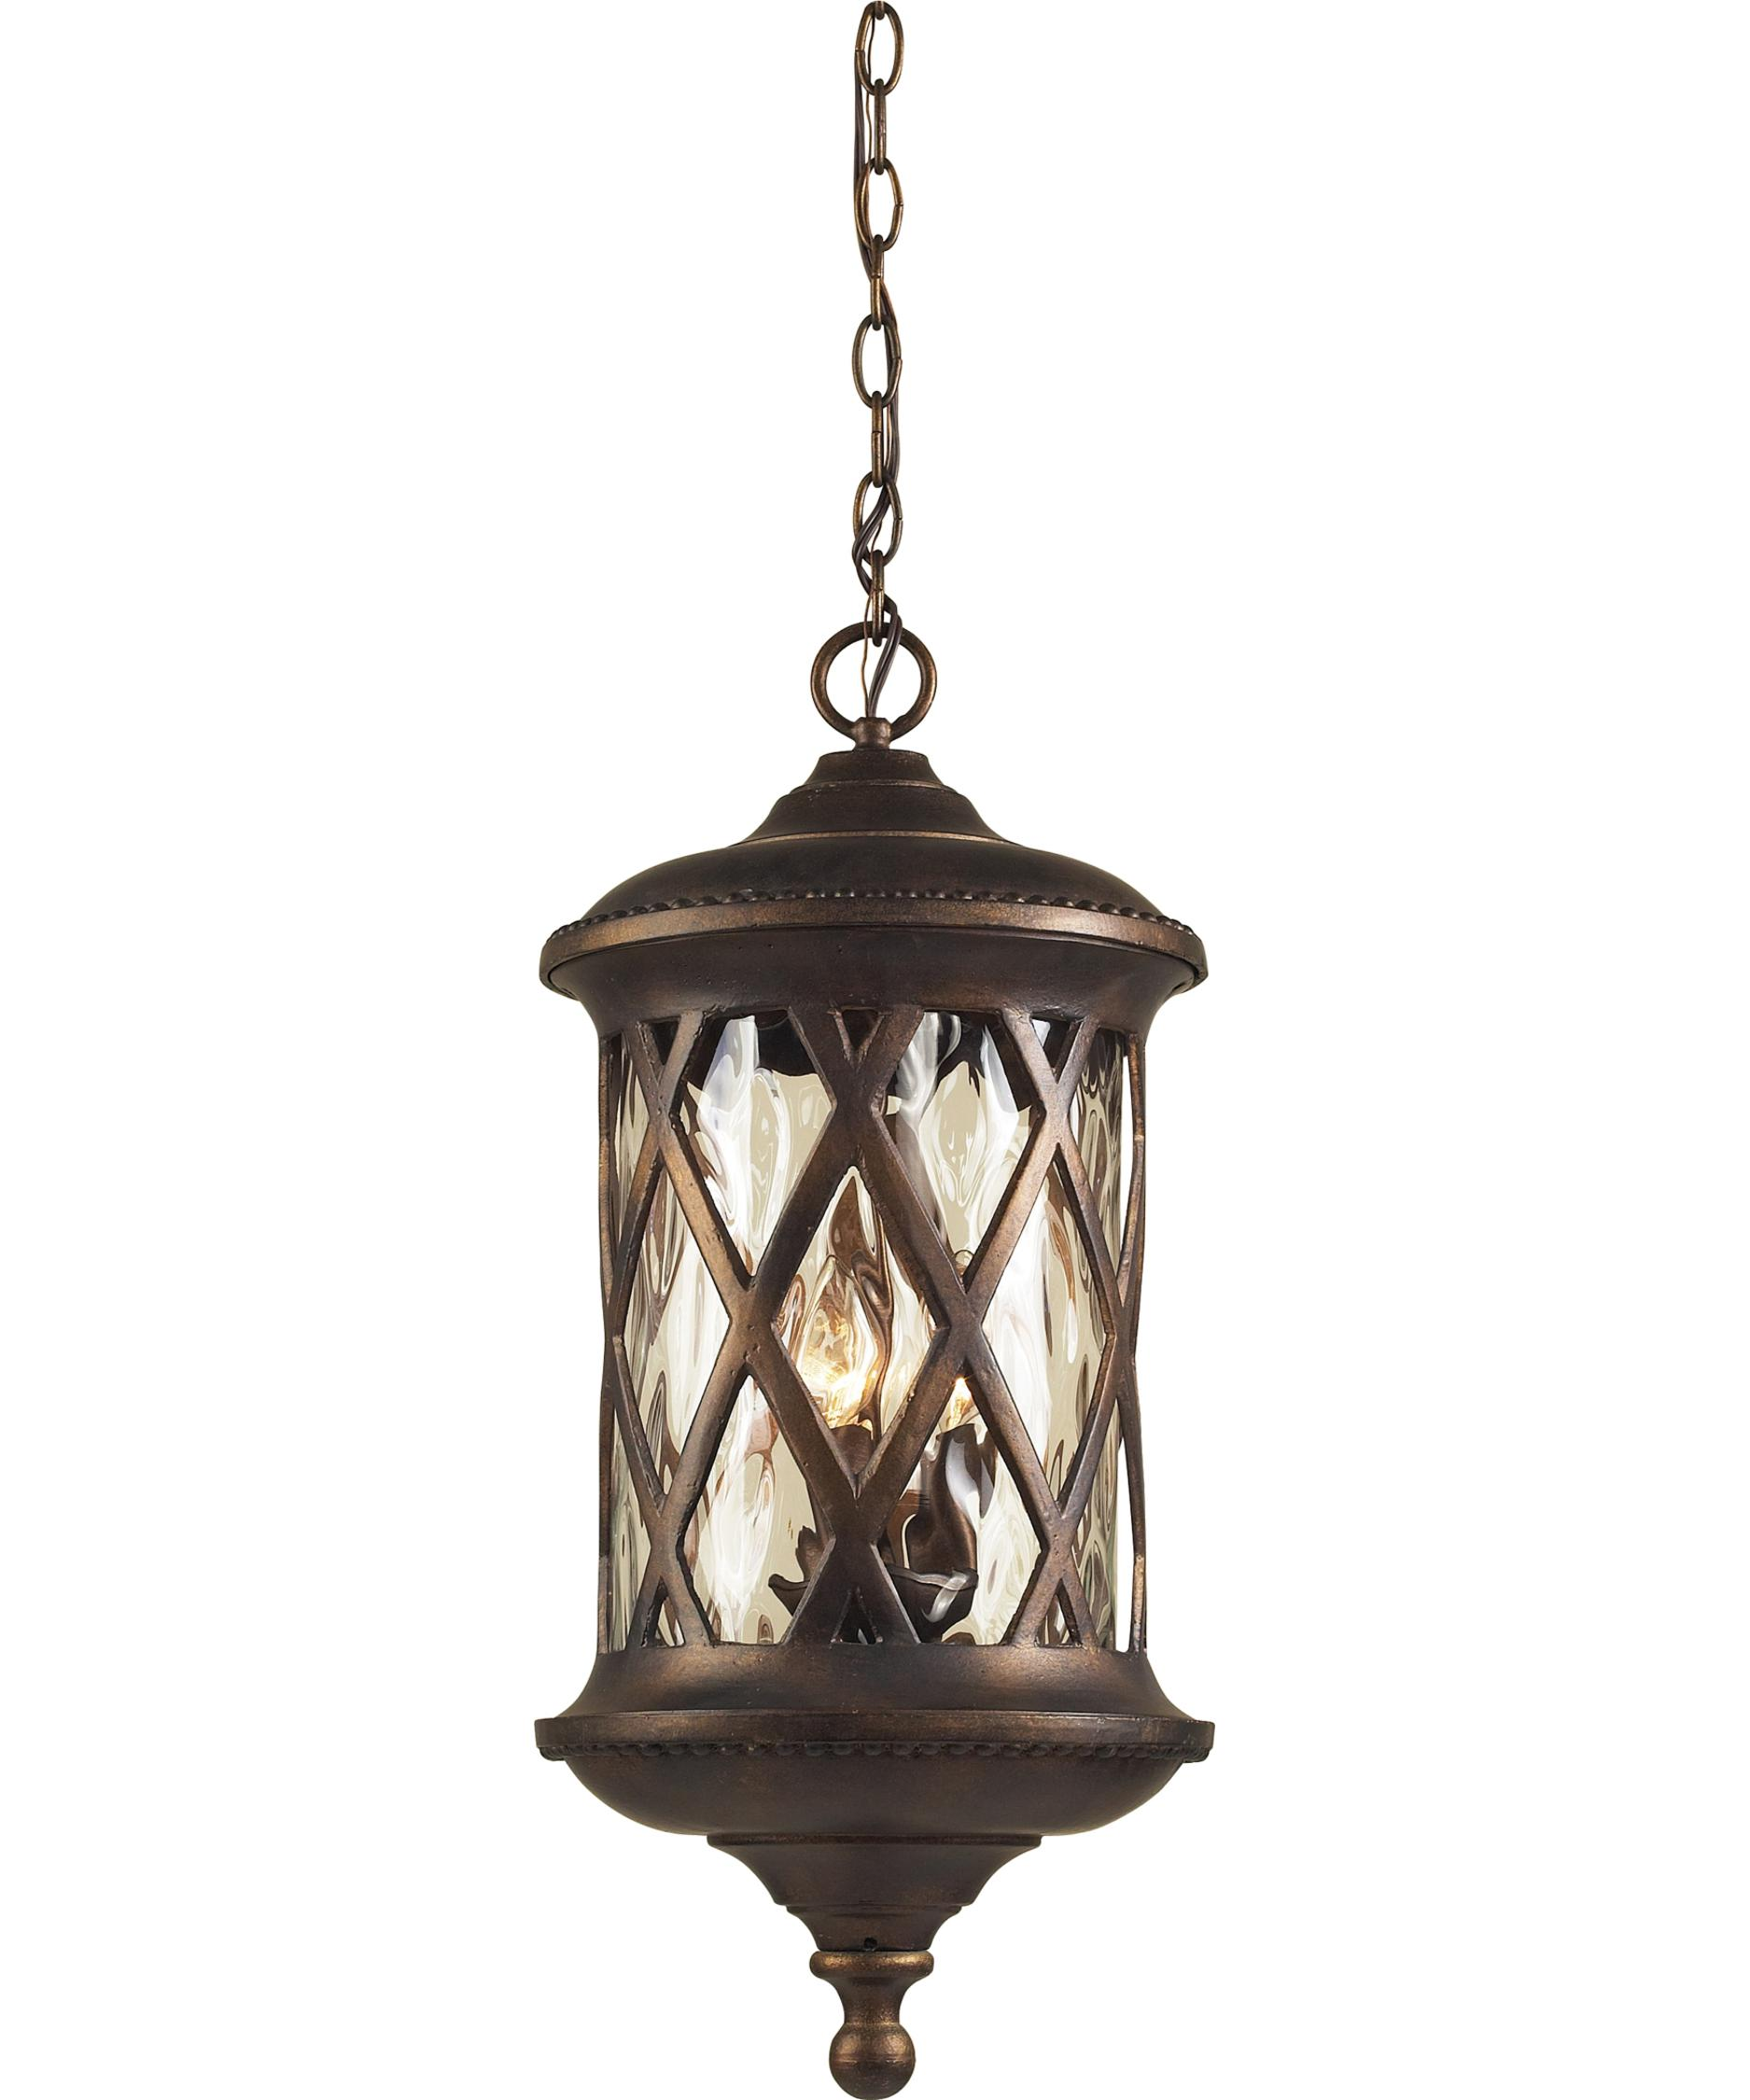 Outdoor hanging lamp - Shown In Hazelnut Bronze Finish And Water Glass